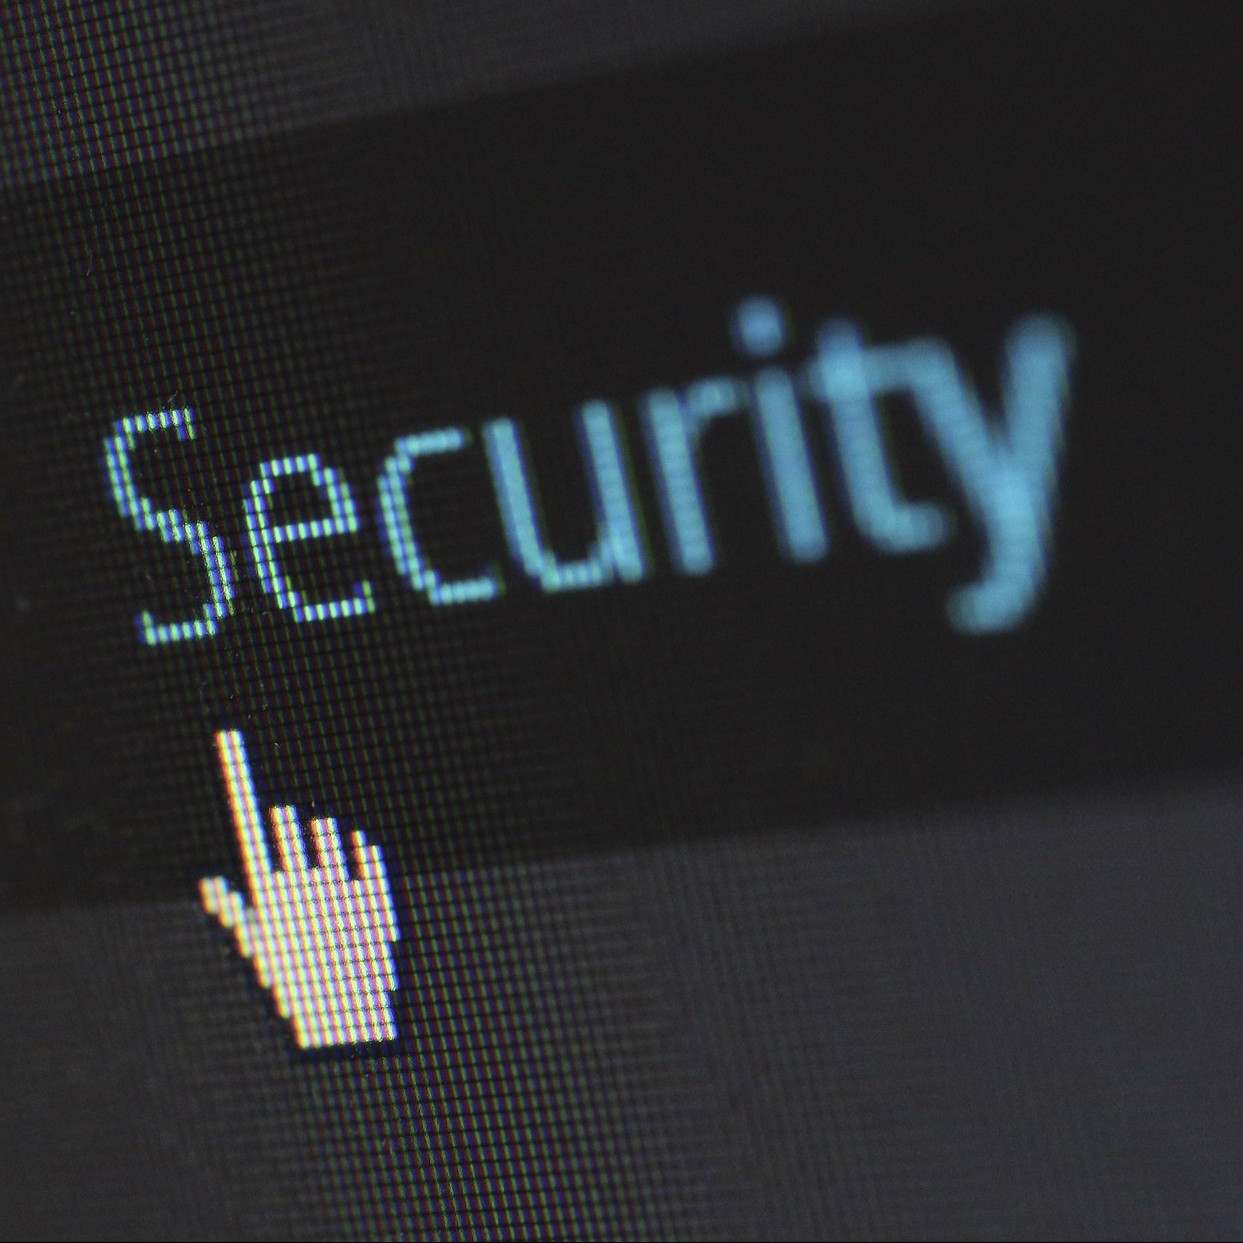 Third Point leads $25m round for security software firm SentinelOne